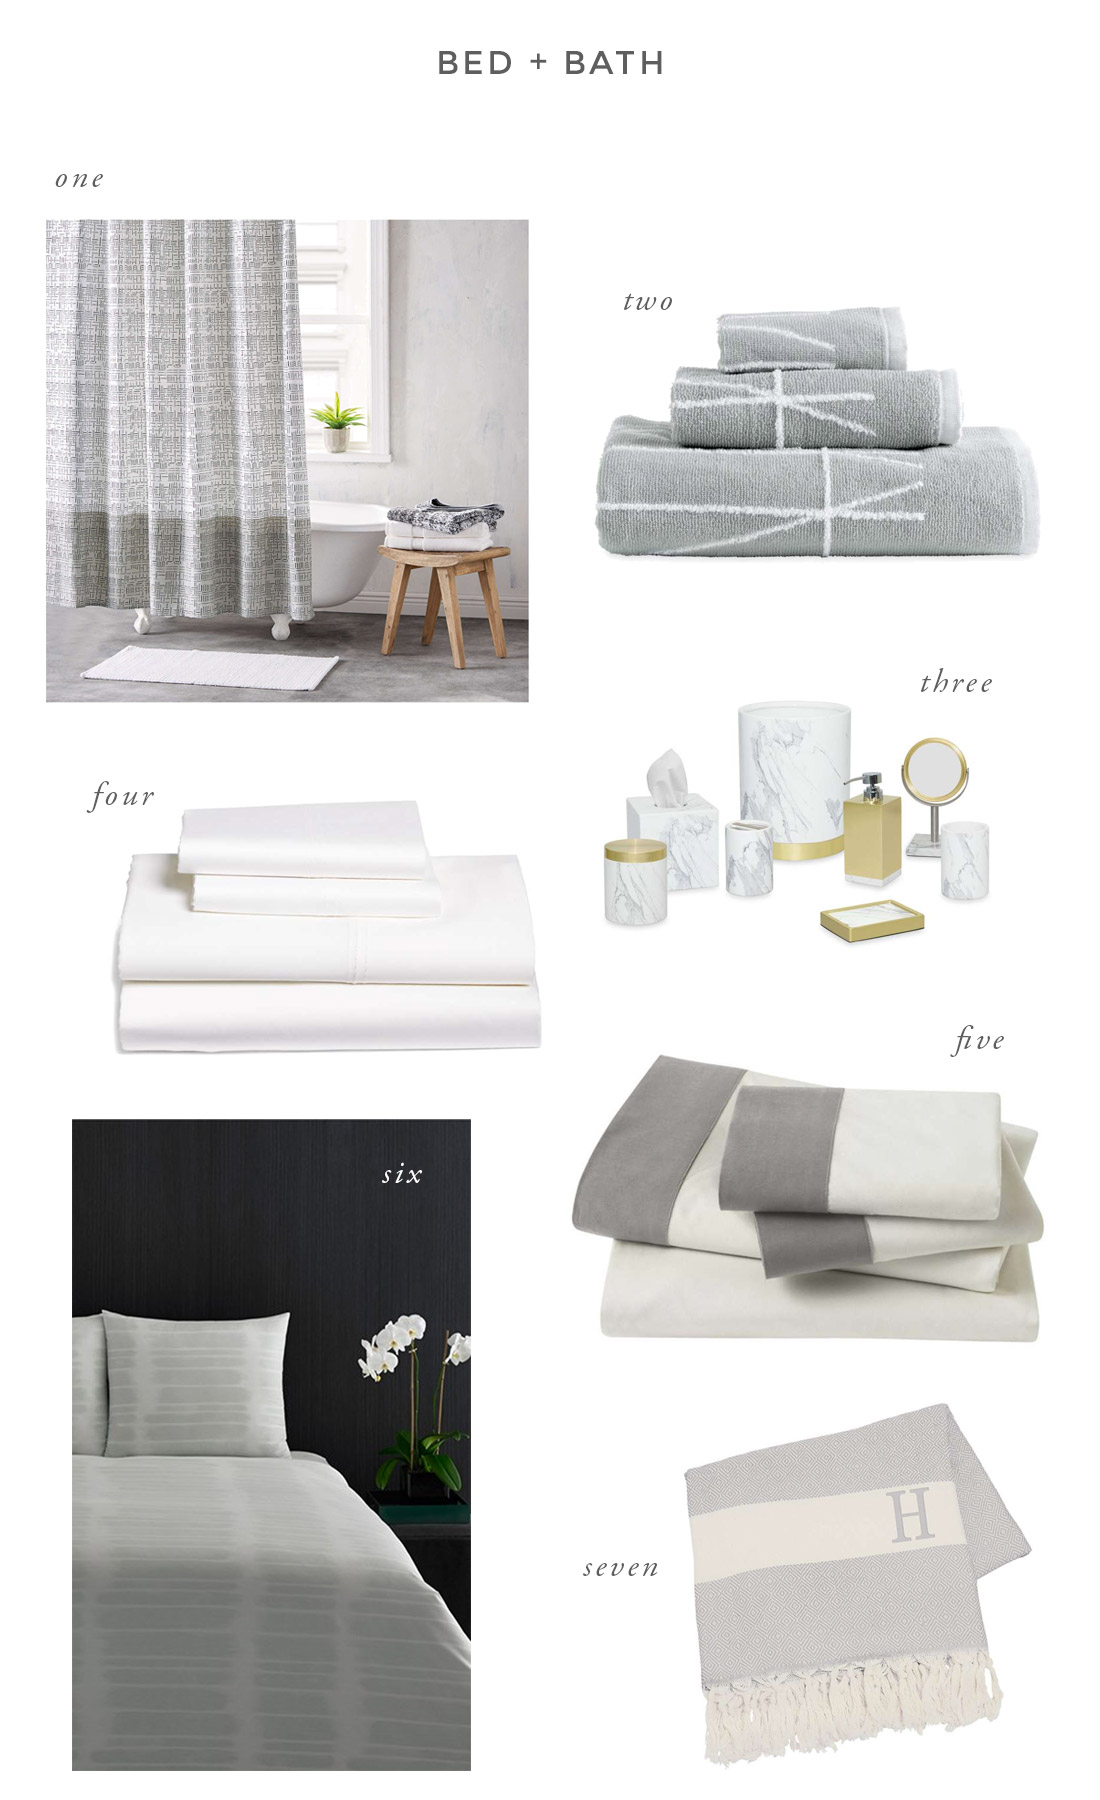 Nordstrom Anniversary Home Sale | Beth & Bath